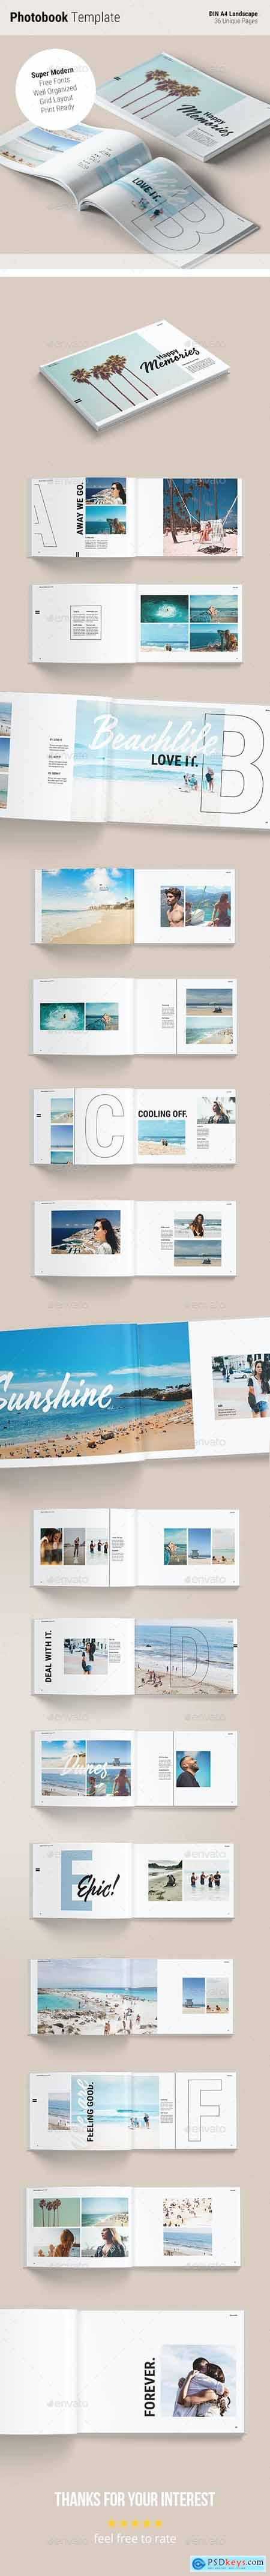 Photobook Template Memories 25319565